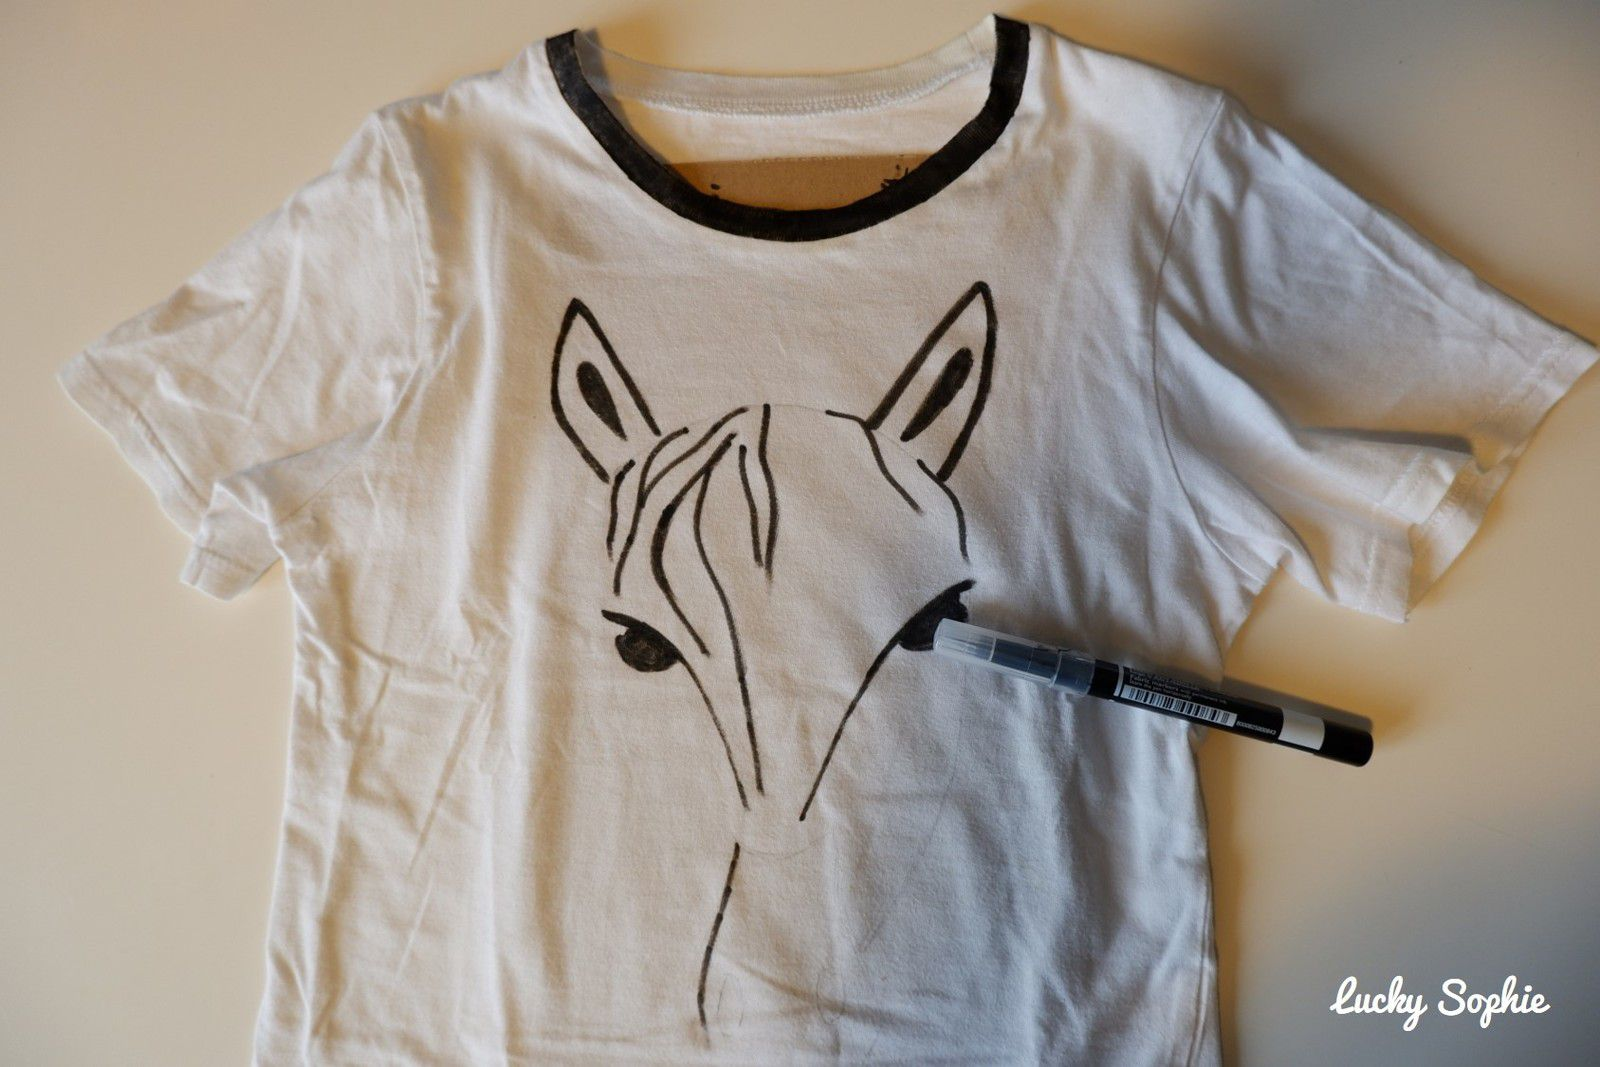 Customiser un tee shirt au feutre textile